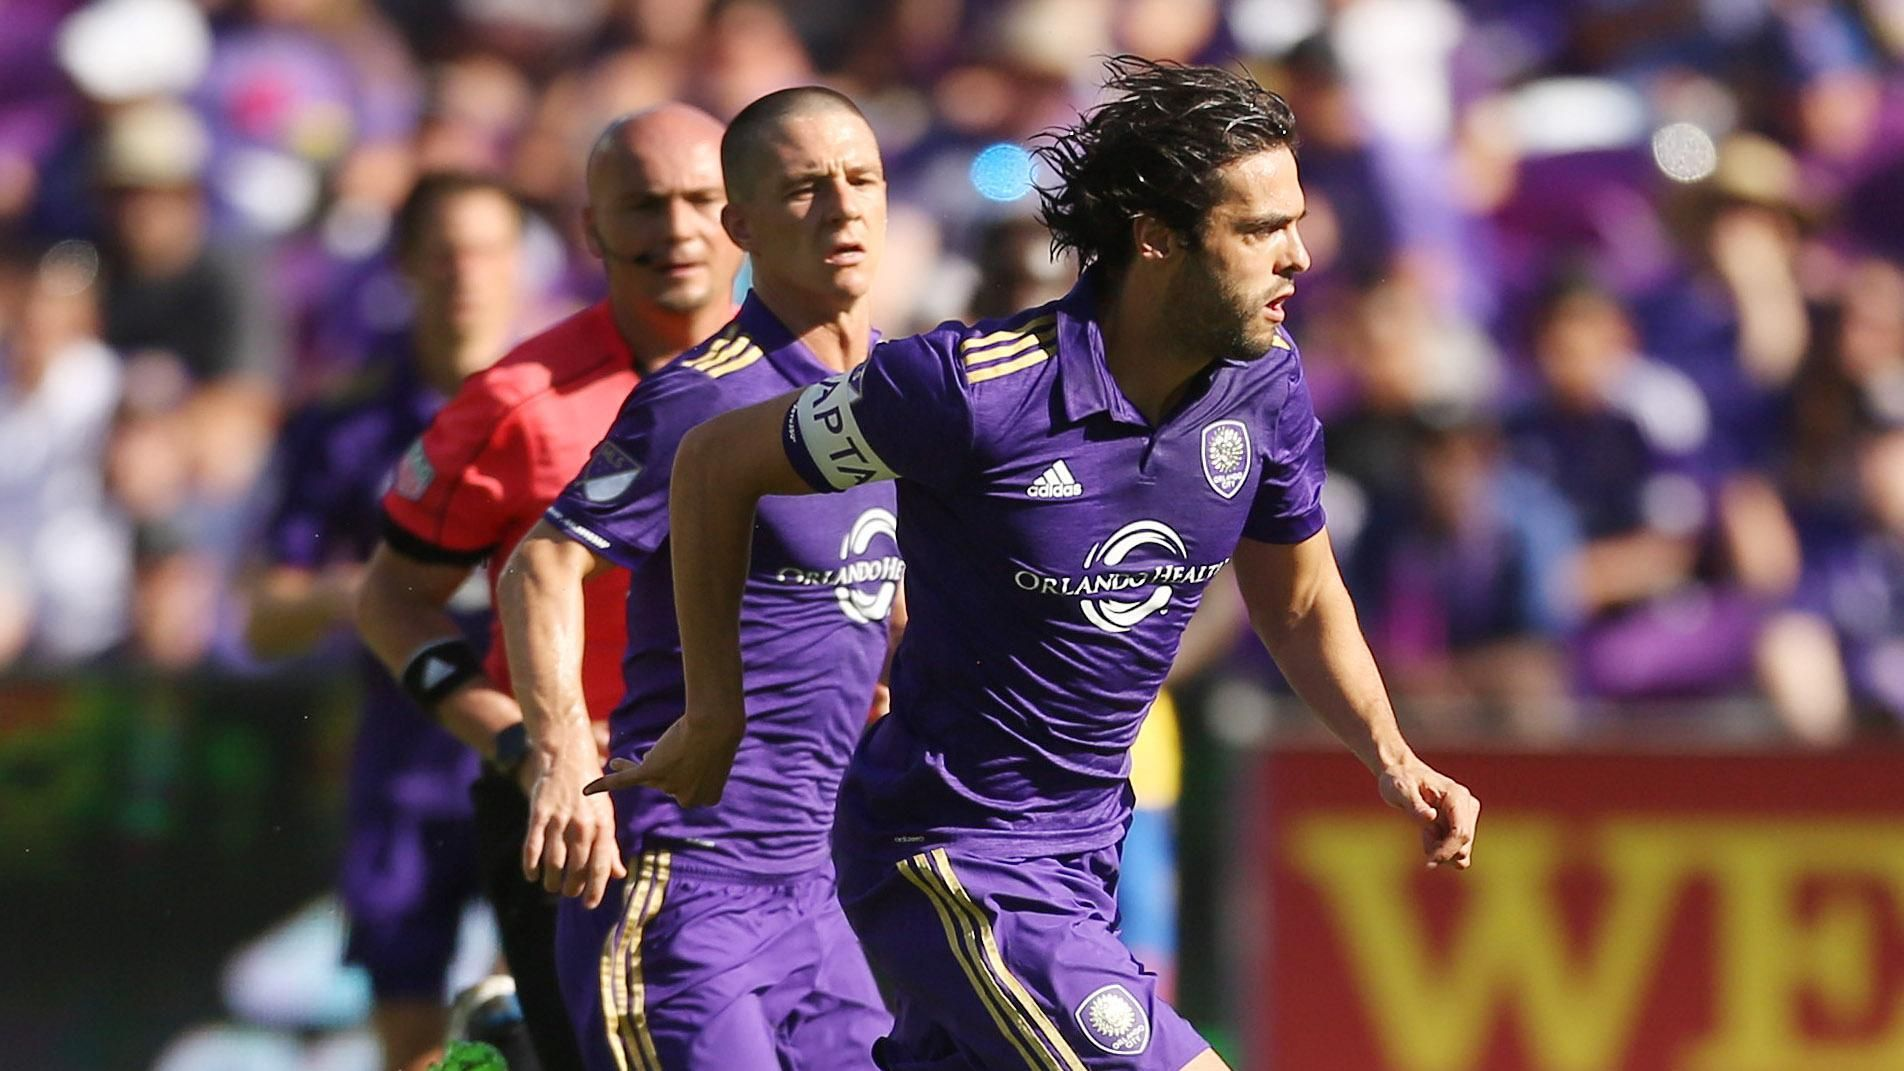 Orlando City 2-0 Colorado: Kaka finds the net